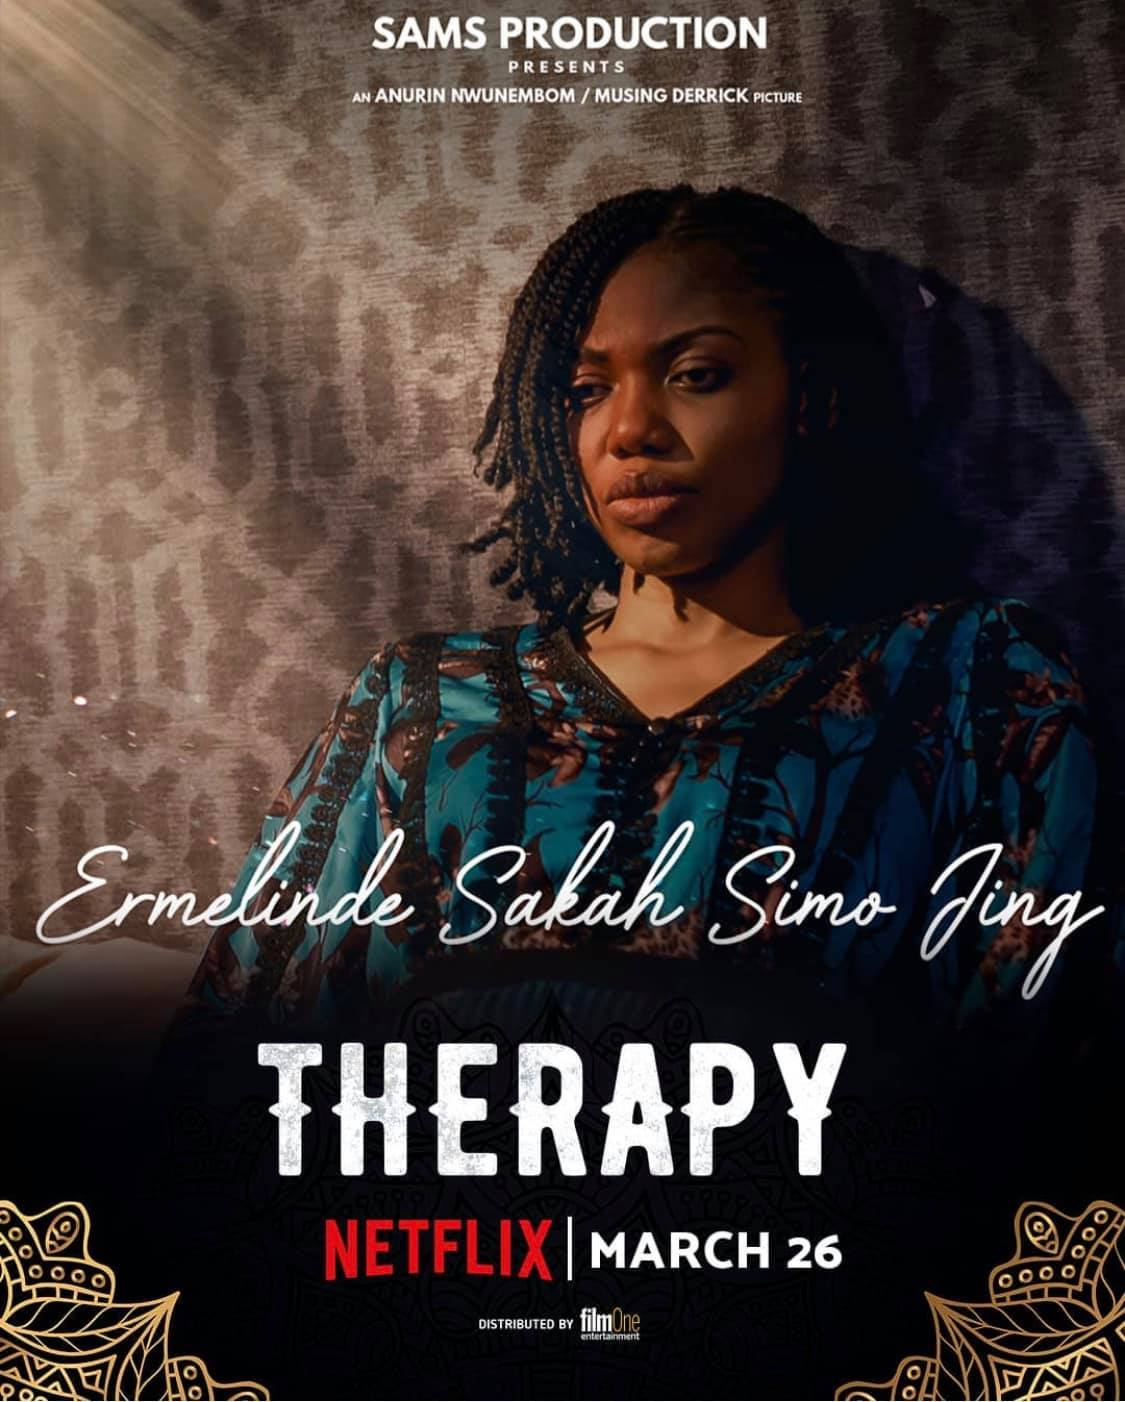 The Best Collywood films streaming on Netflix in 2021 - Therapy